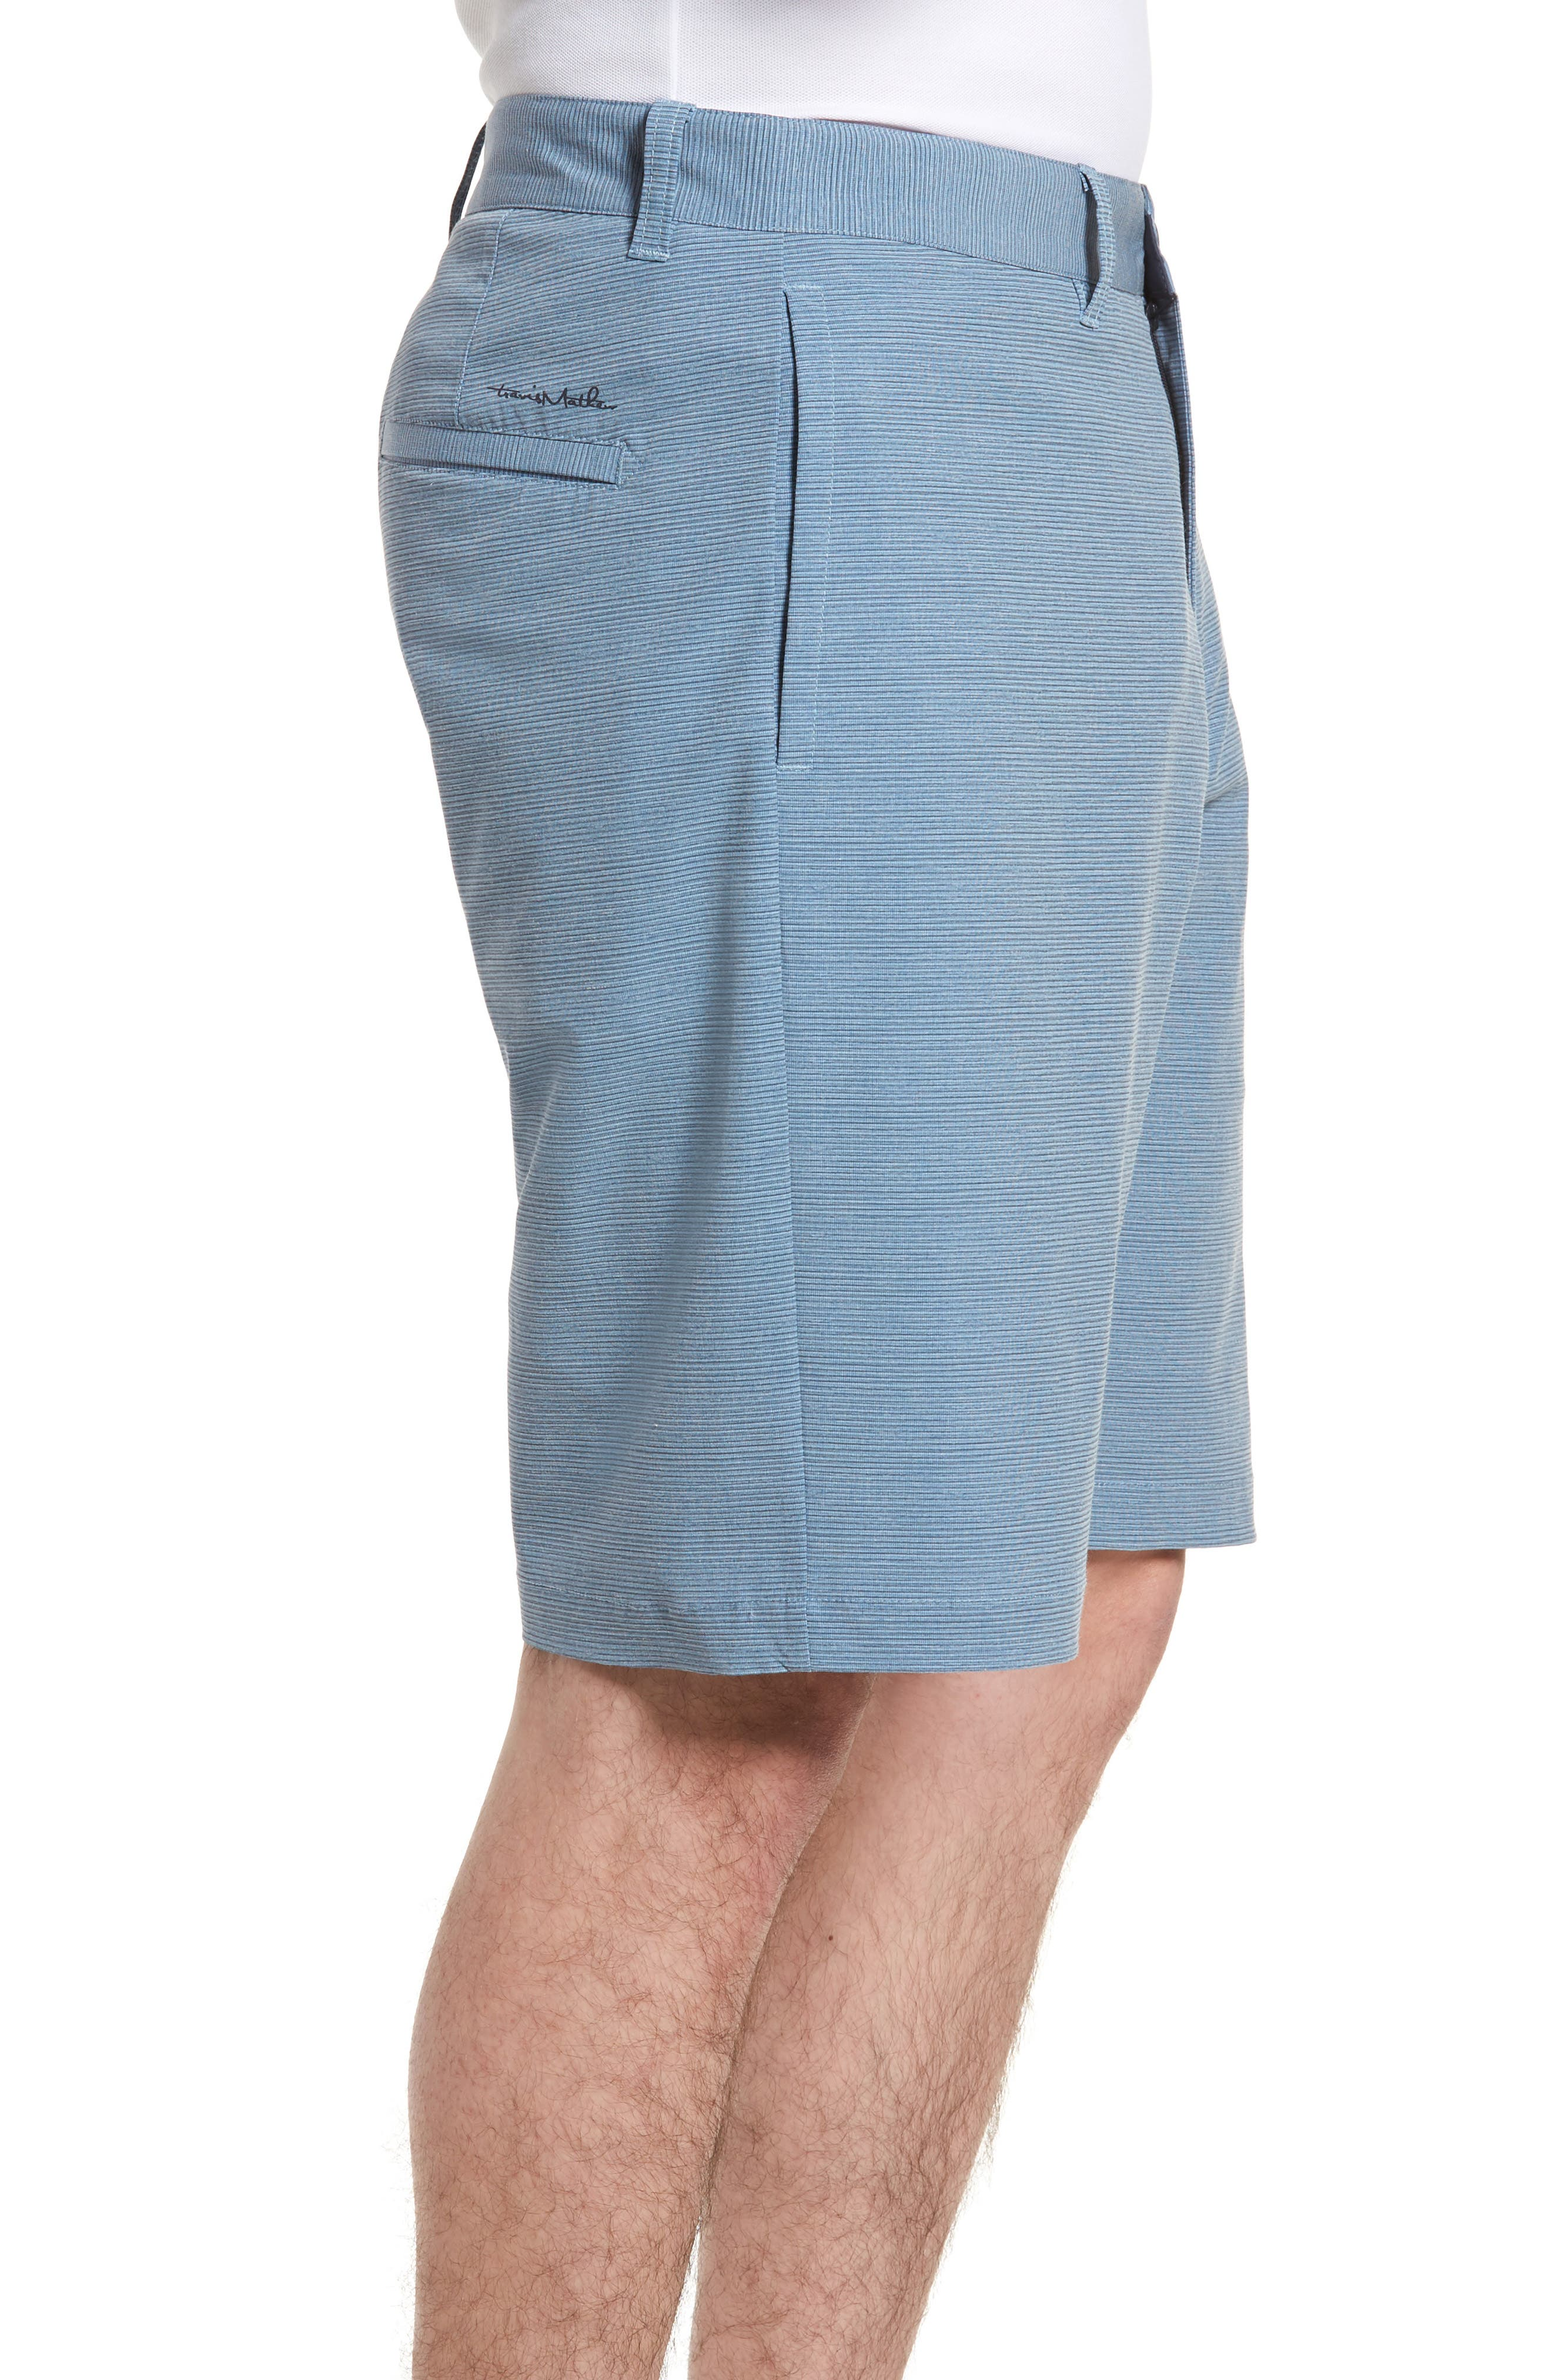 Toro Regular Fit Microstripe Shorts,                             Alternate thumbnail 3, color,                             French Blue/ Micro Chip